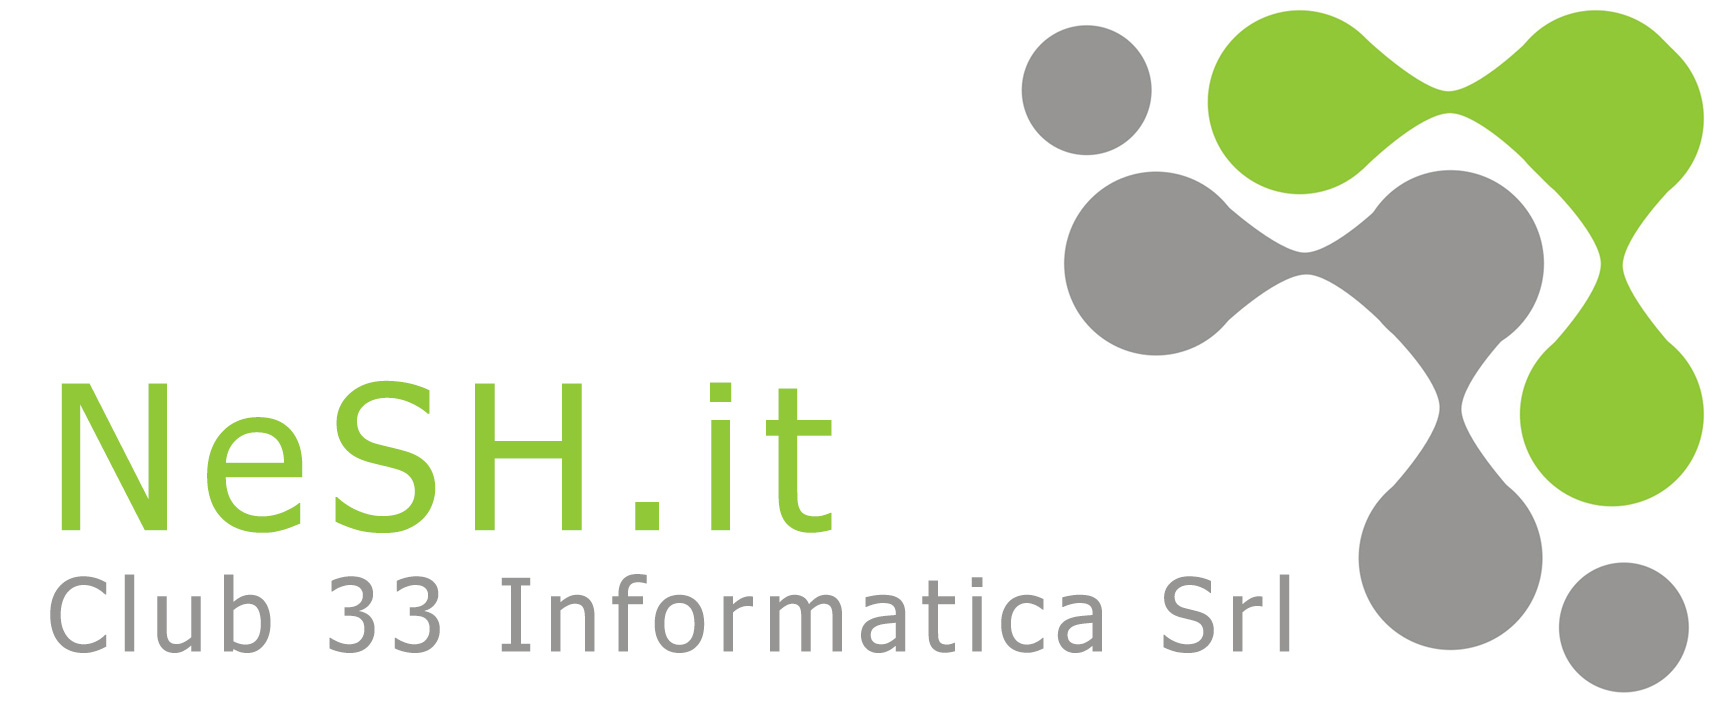 Logo Nesh.it Club 33 informatica Srl